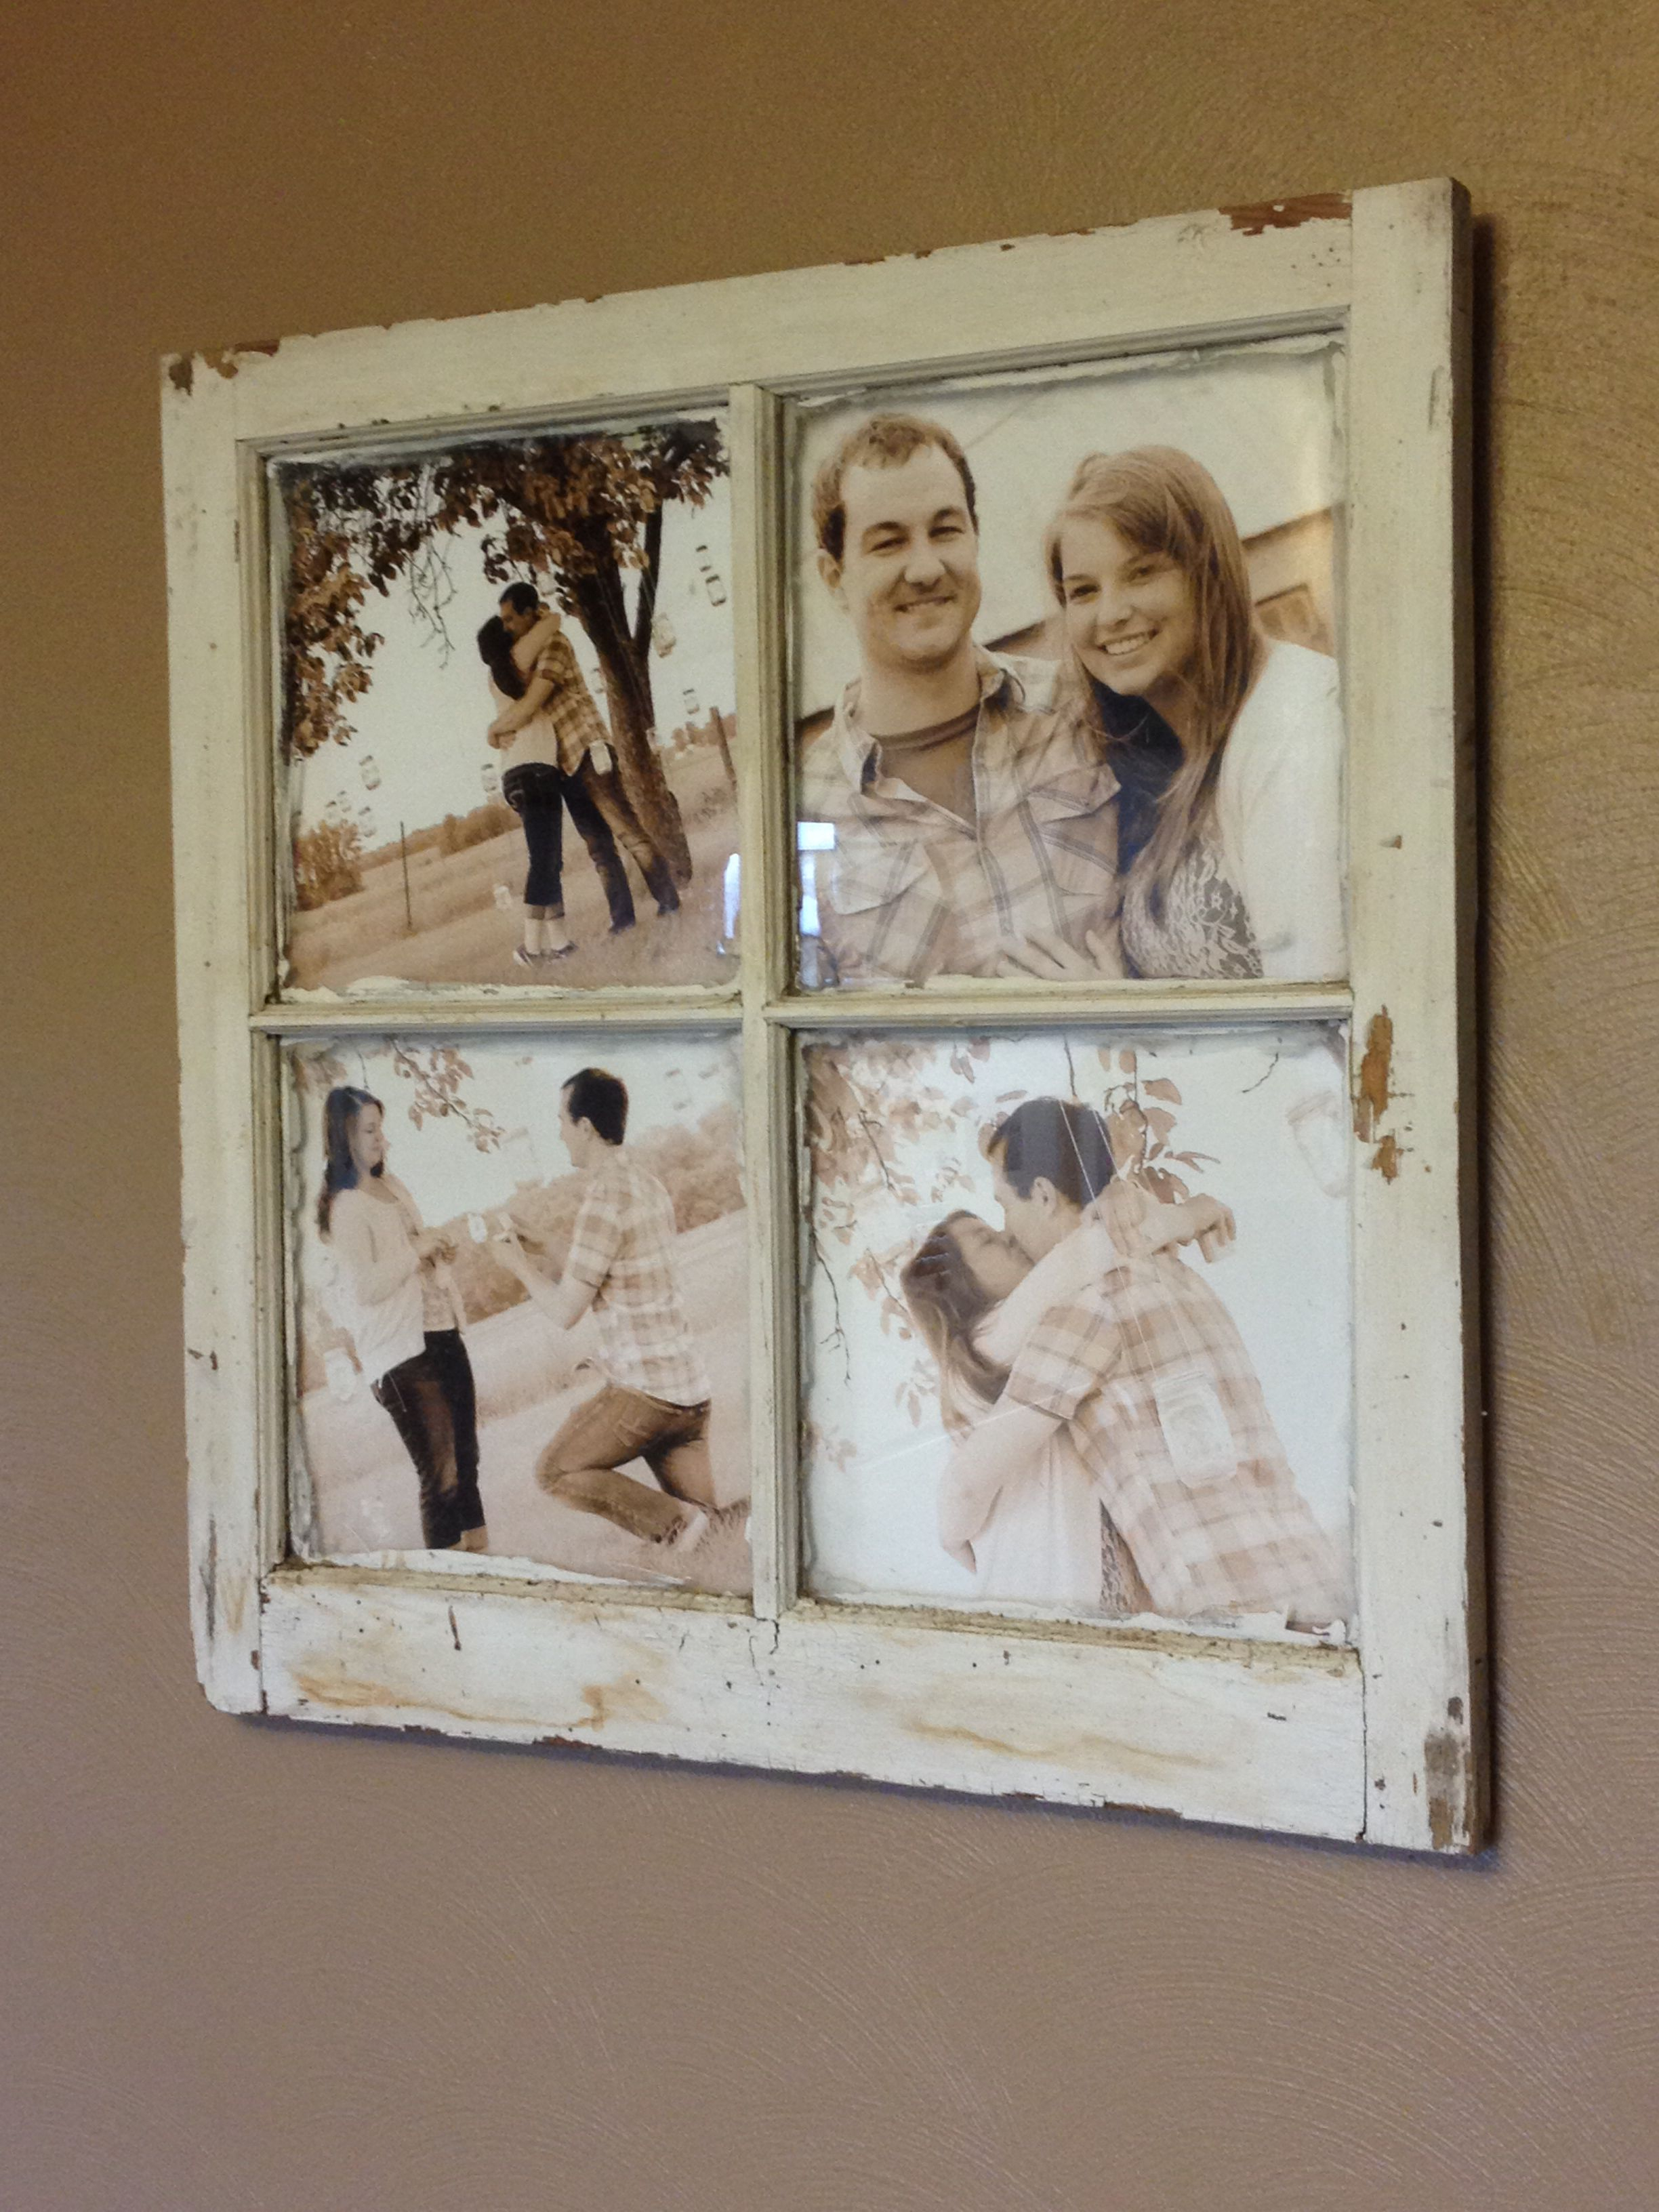 Old Barn Window Picture Frame | Decorating | Old Window pertaining to Old Rustic Barn Window Frame (Image 11 of 30)